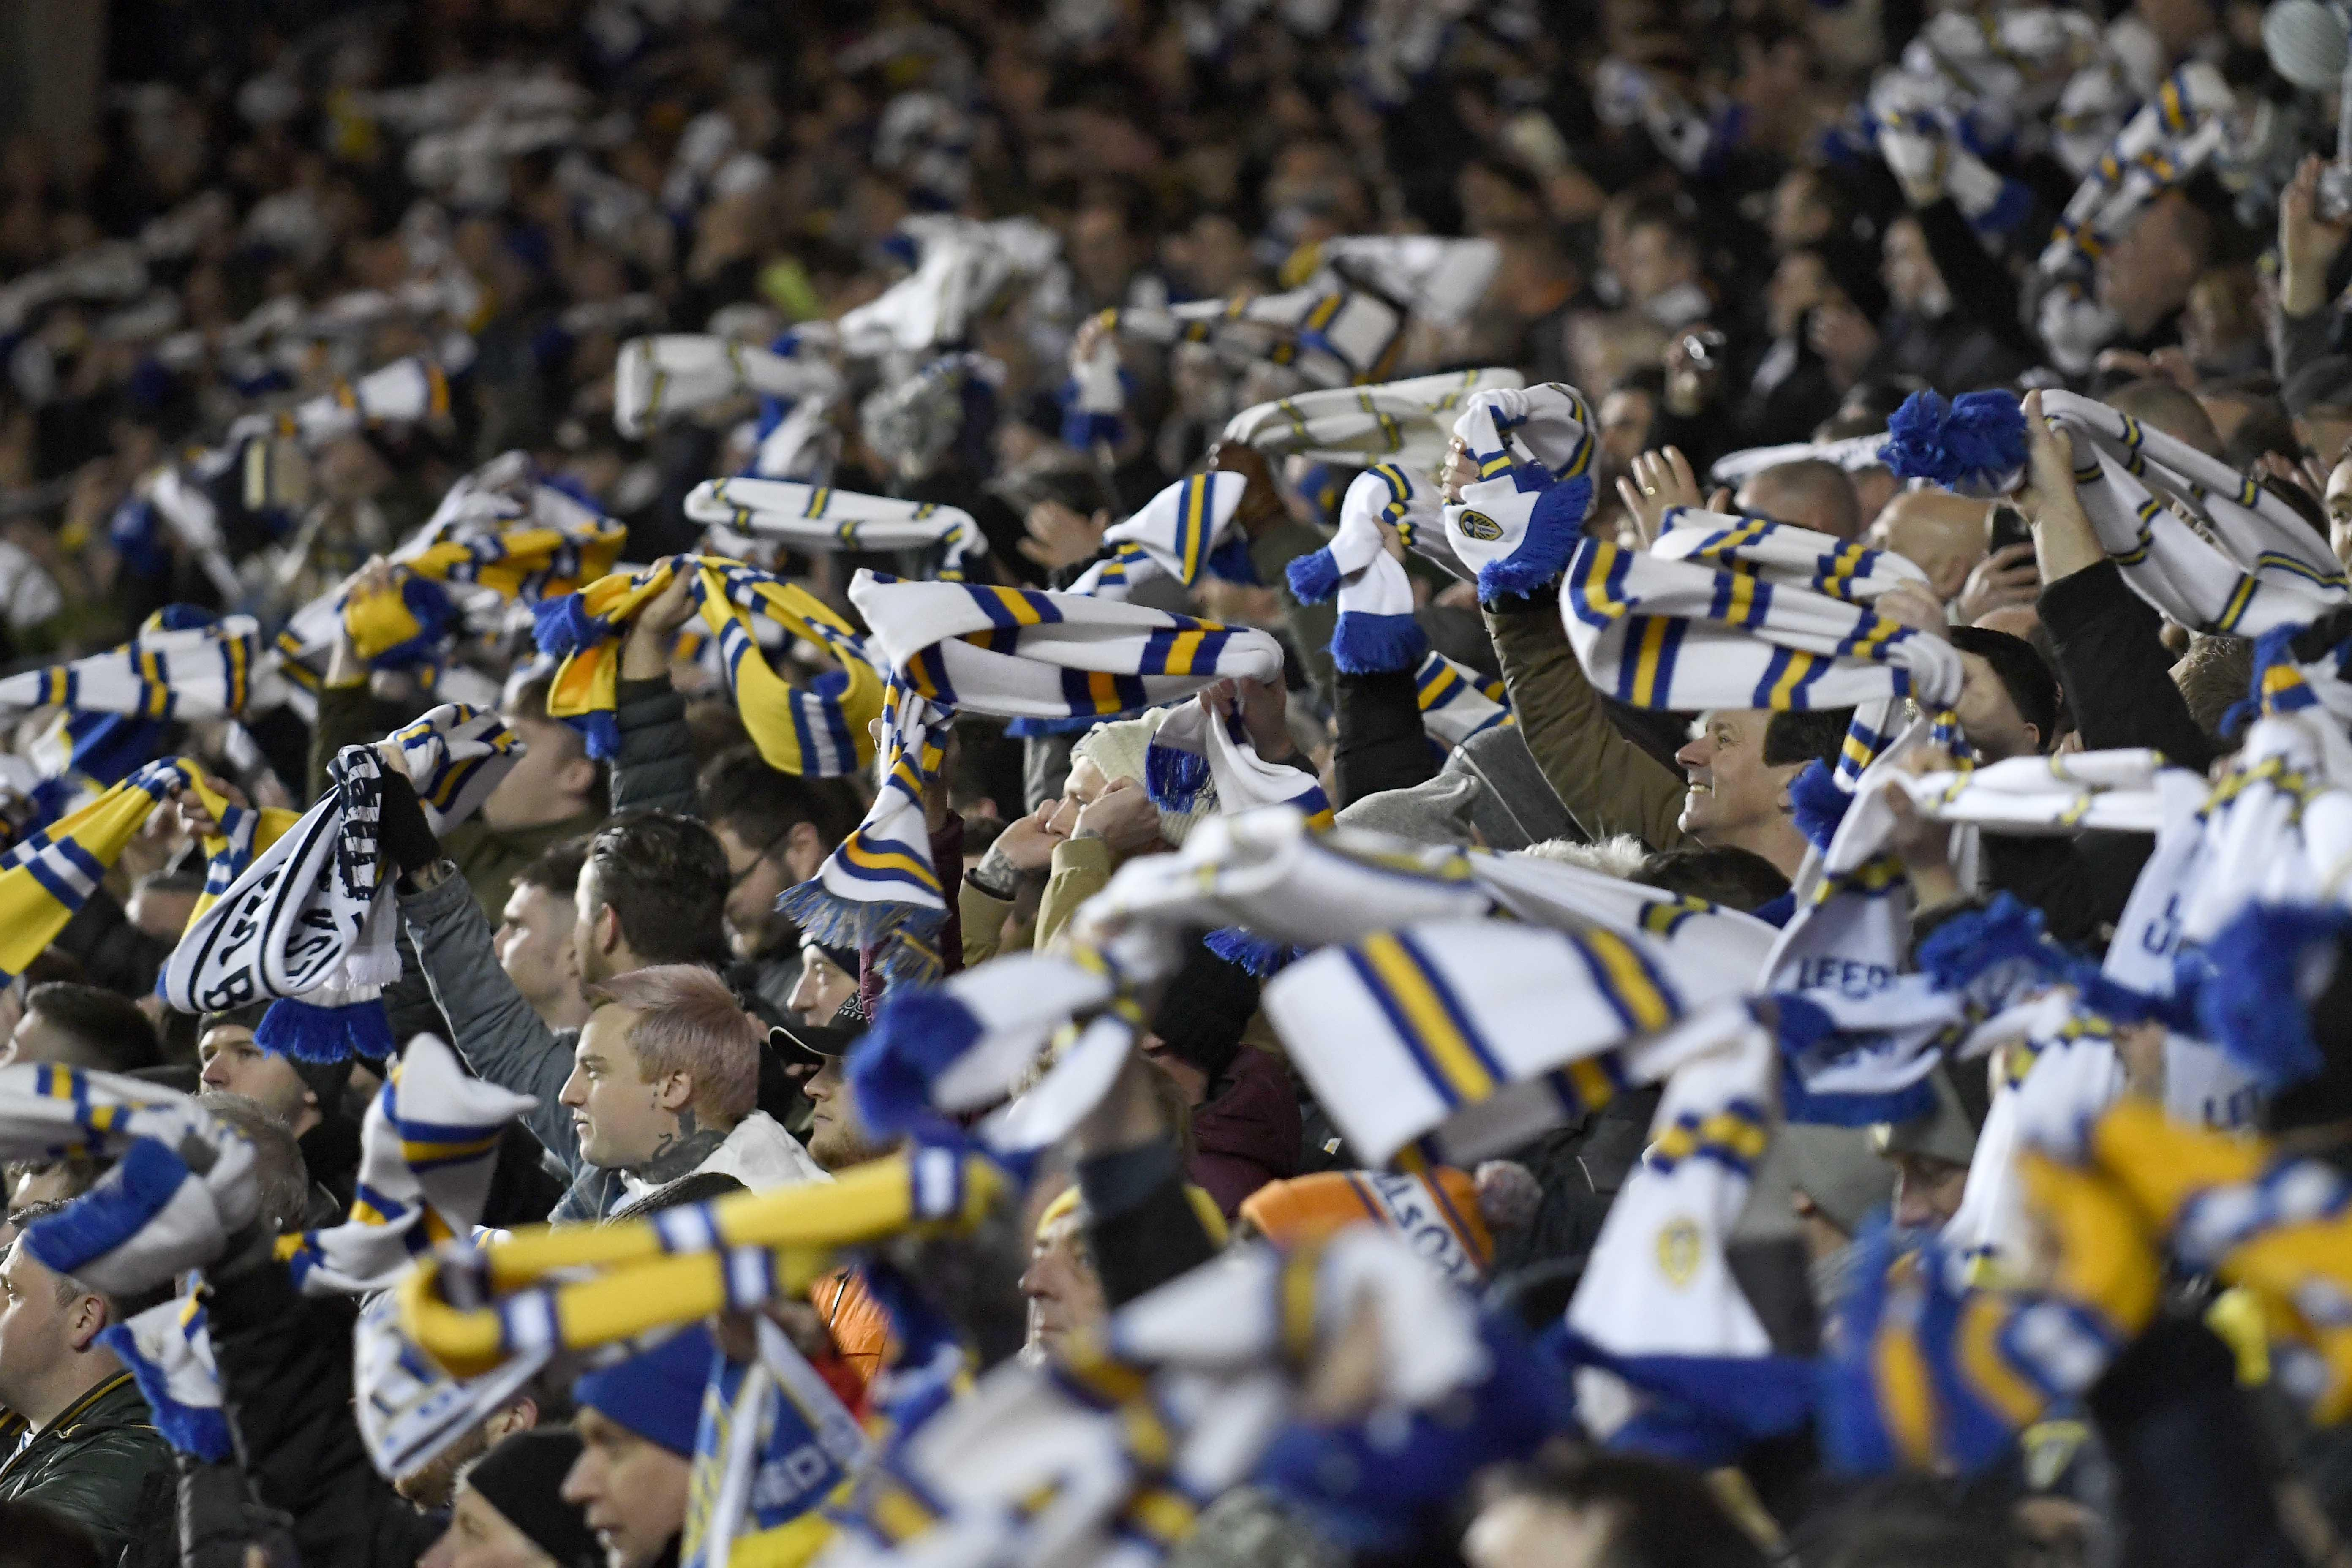 Whirling scarves enhance the atmosphere at Elland Road